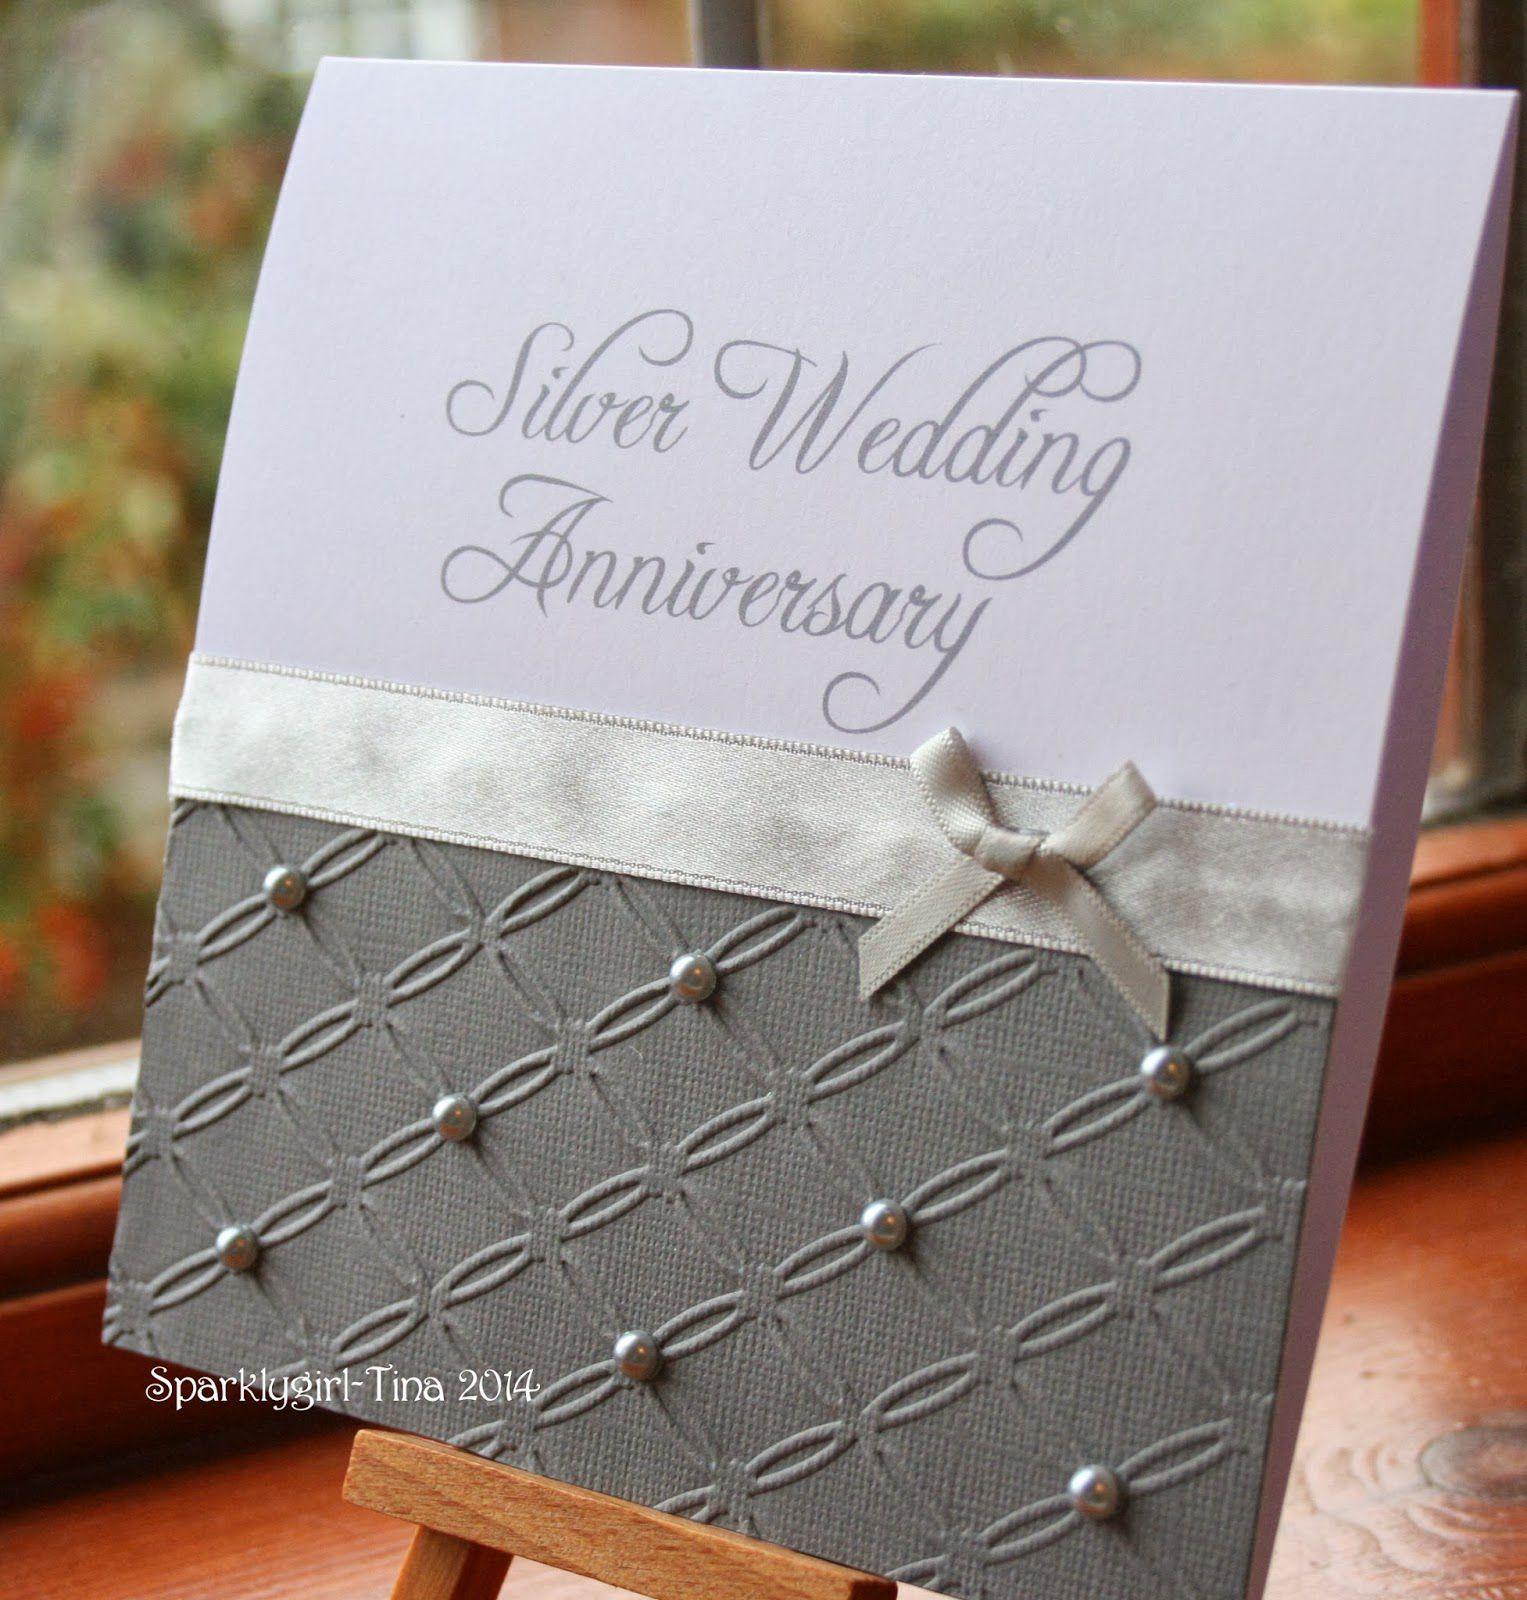 25th wedding anniversary invitations online wedding invitations 25th wedding anniversary invitations online stopboris Choice Image